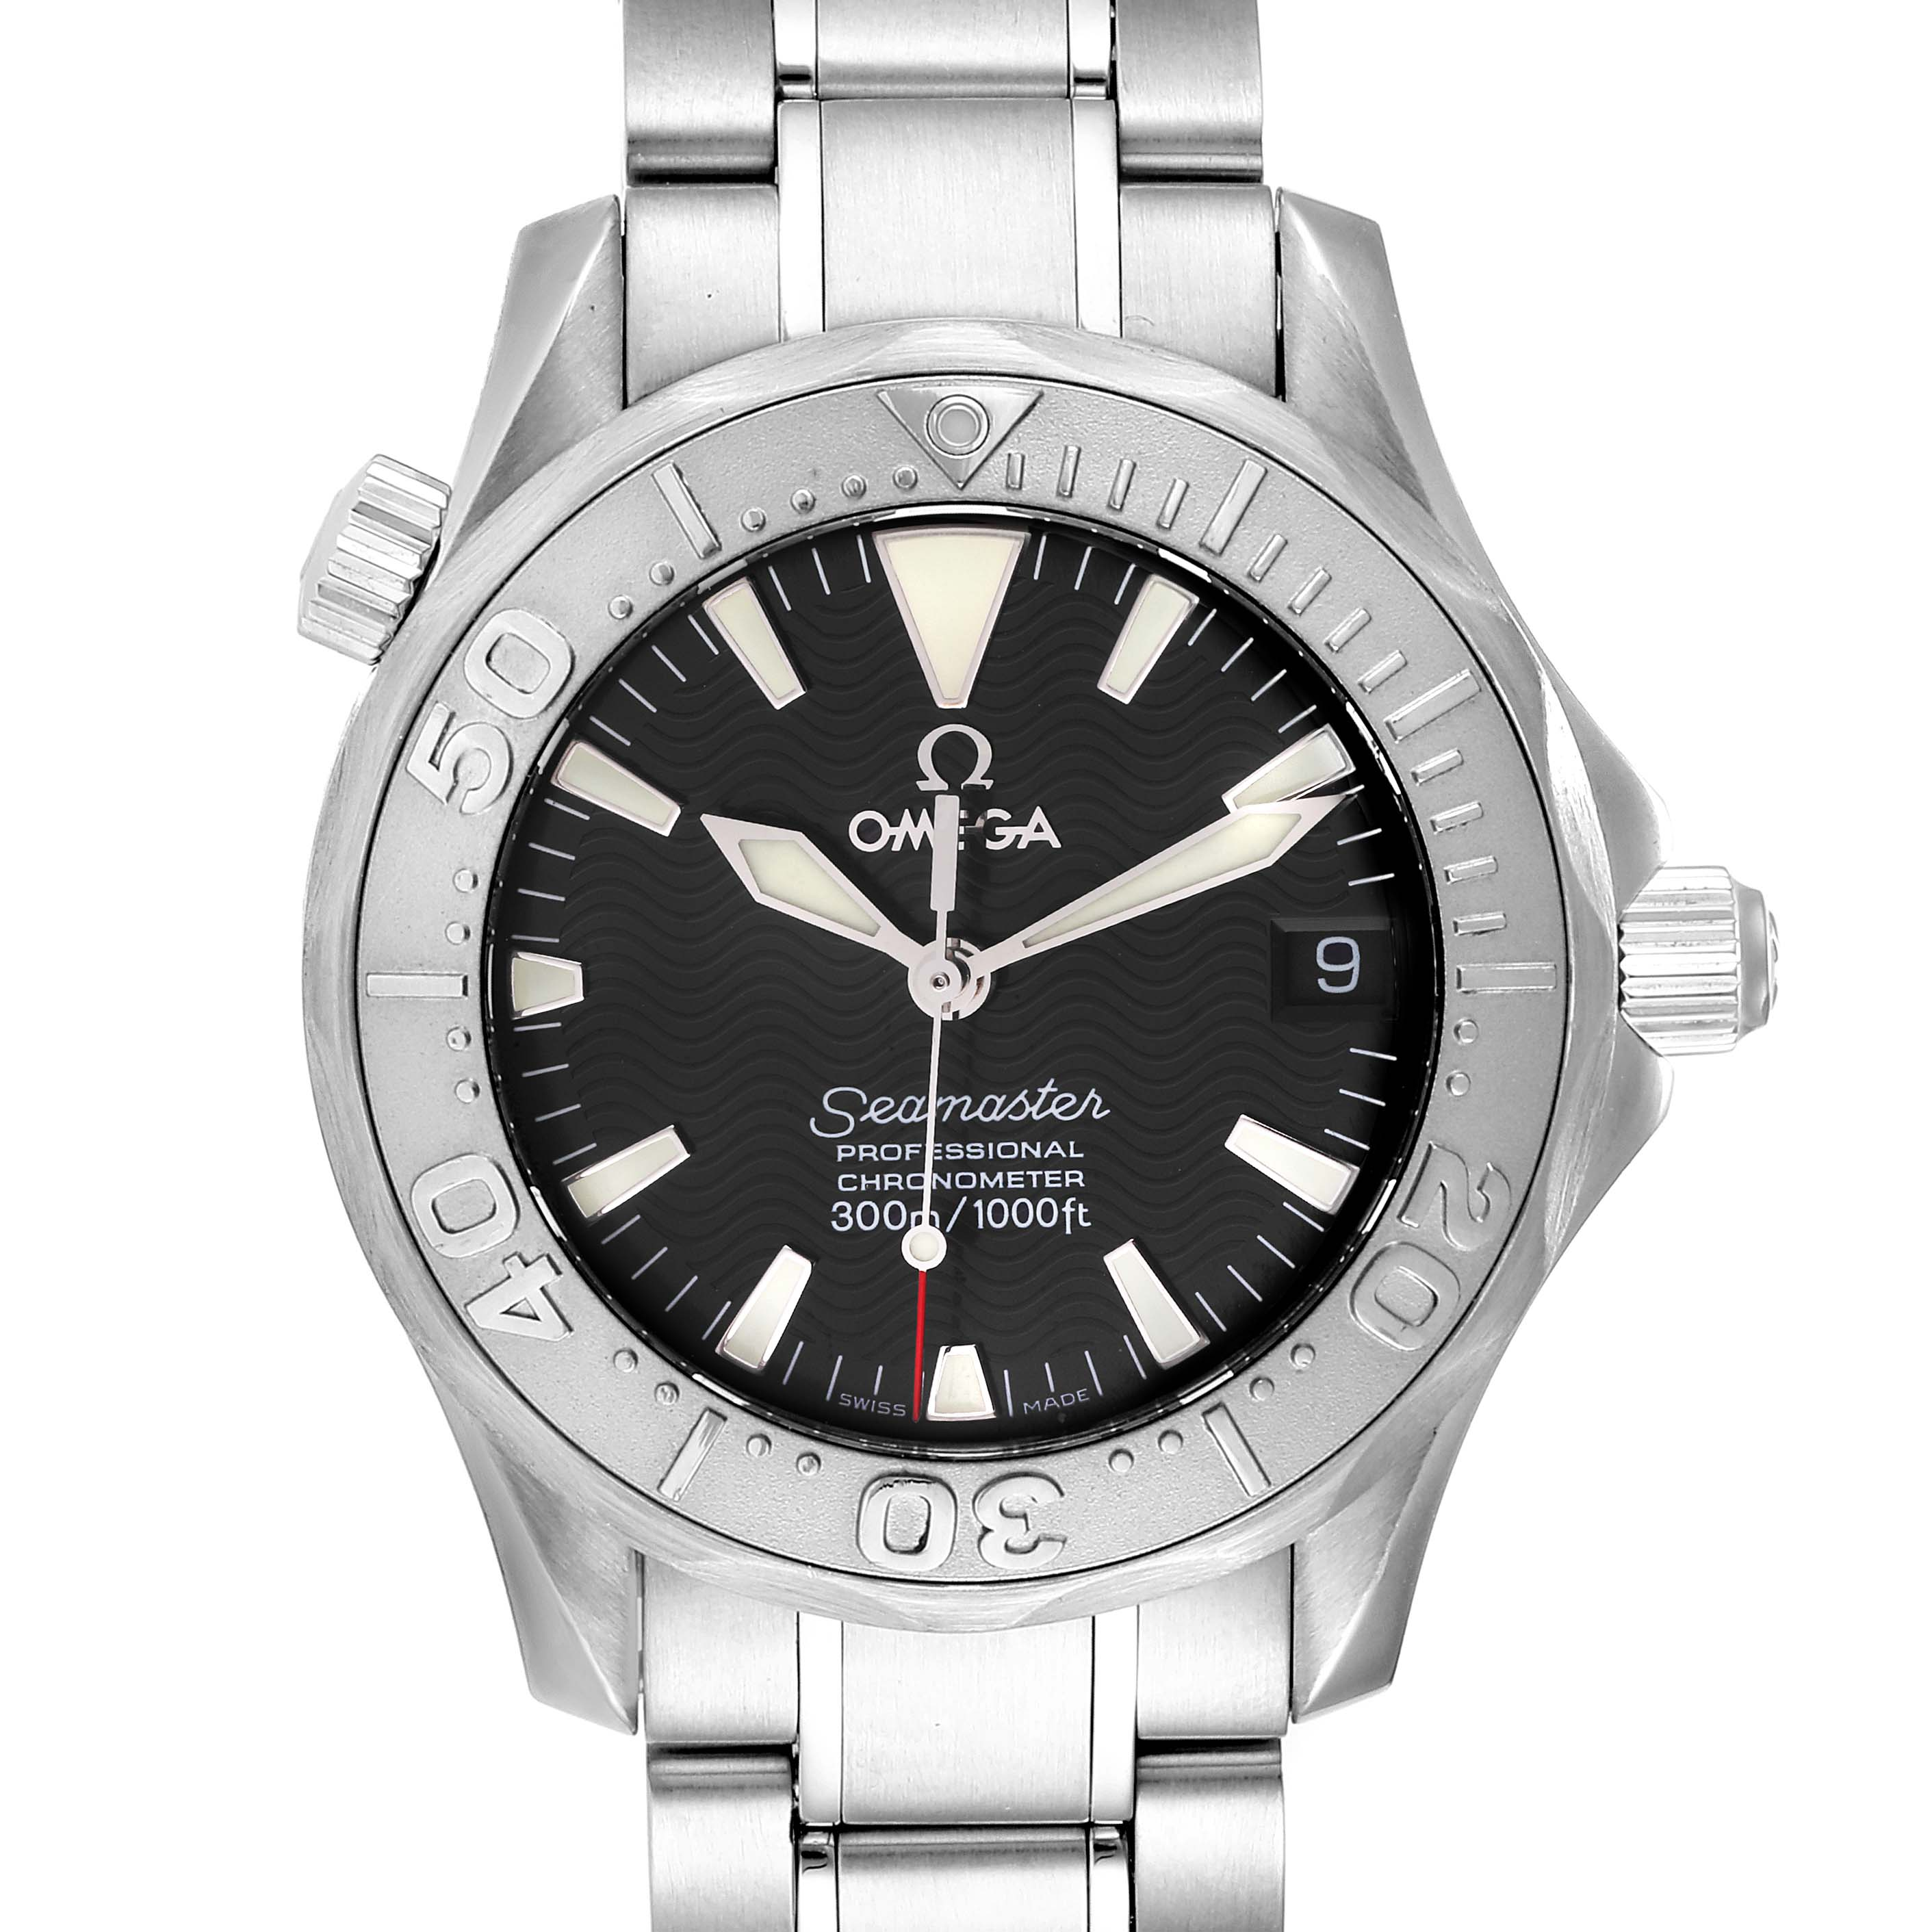 Omega Seamaster 36mm Midsize Black Wave Dial Steel Watch 2236.50.00 Card